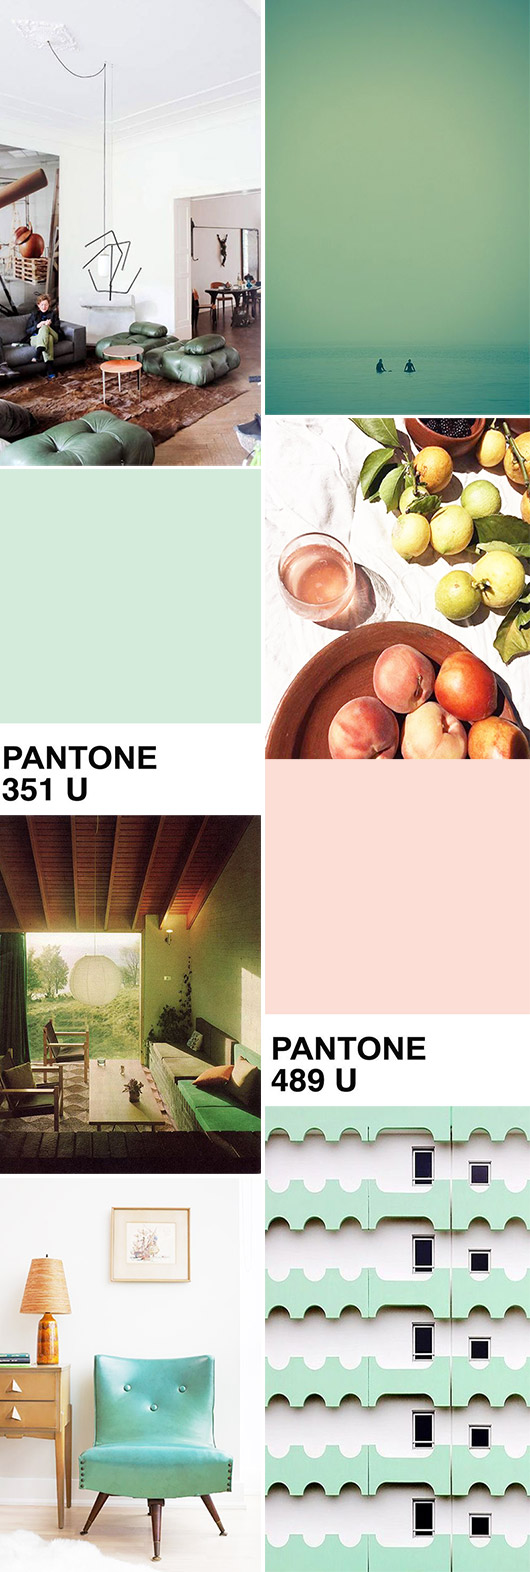 pink and green color palette inspiration. / sfgirlbybay